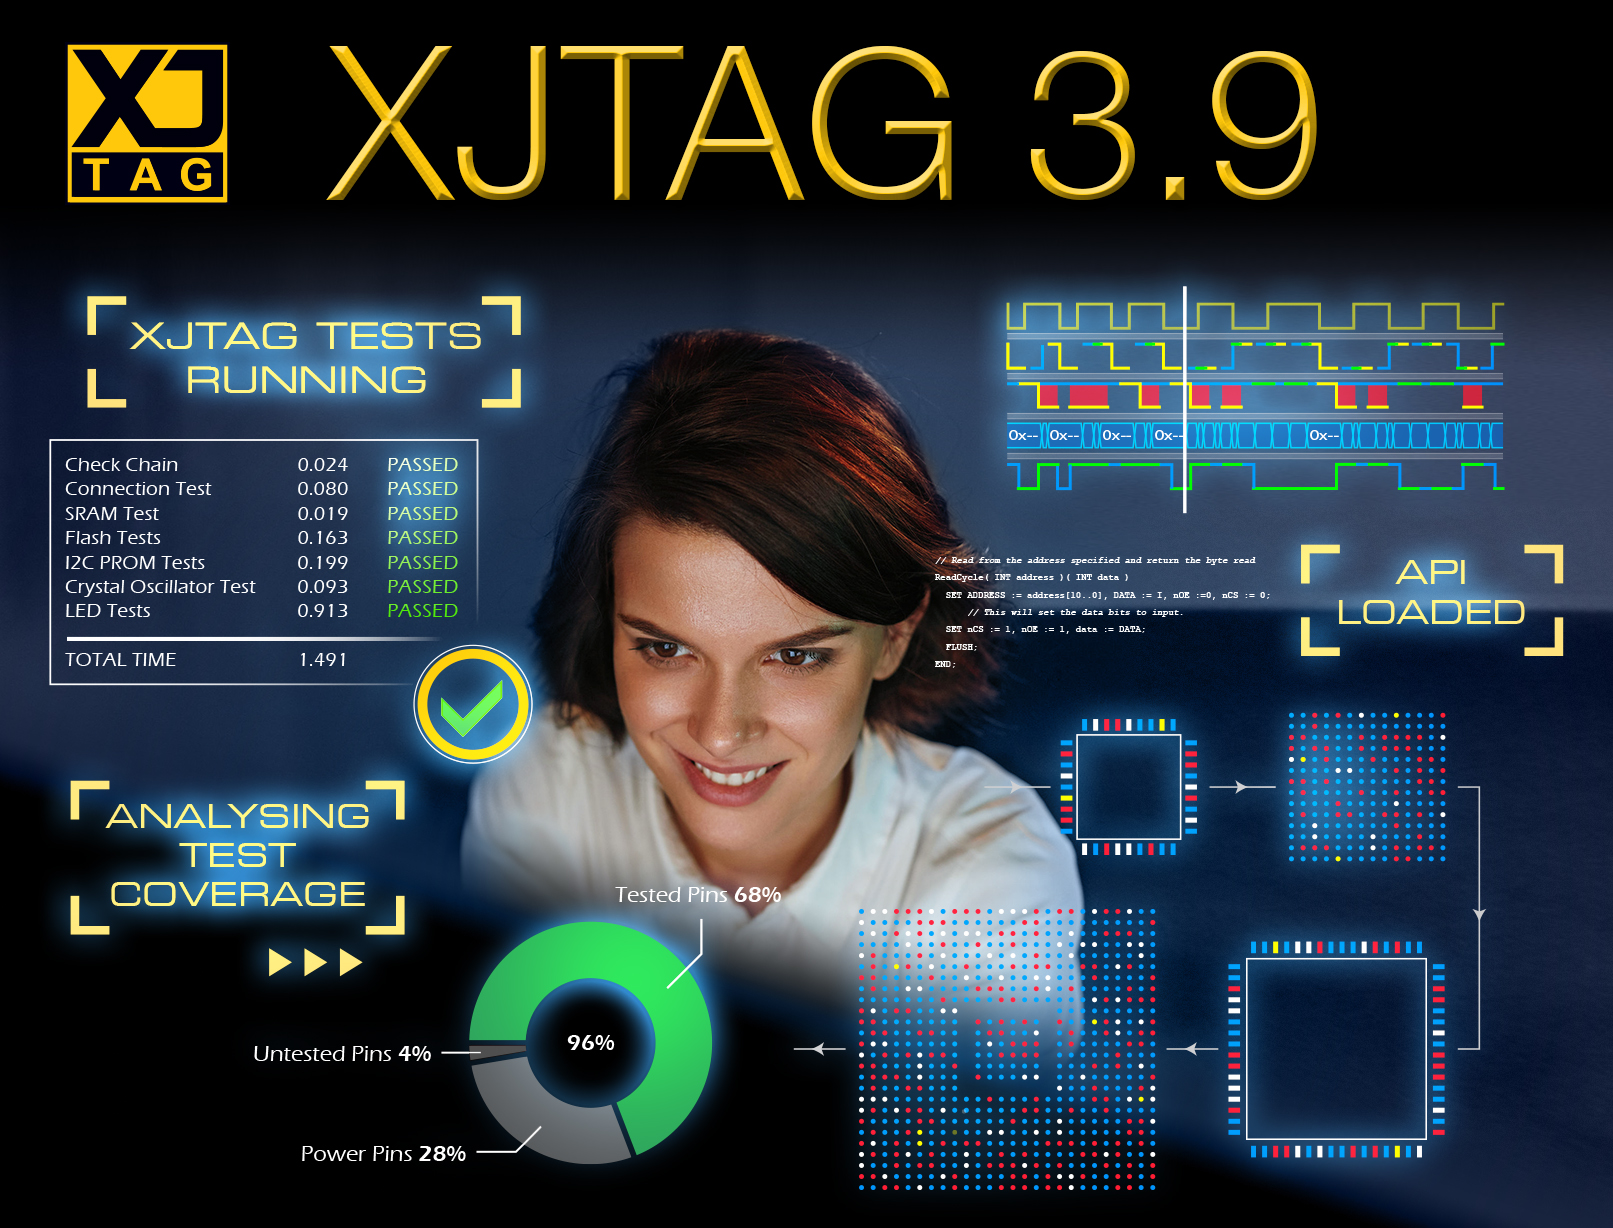 XJTAG Boundary Scan (JTAG) Version 3.9